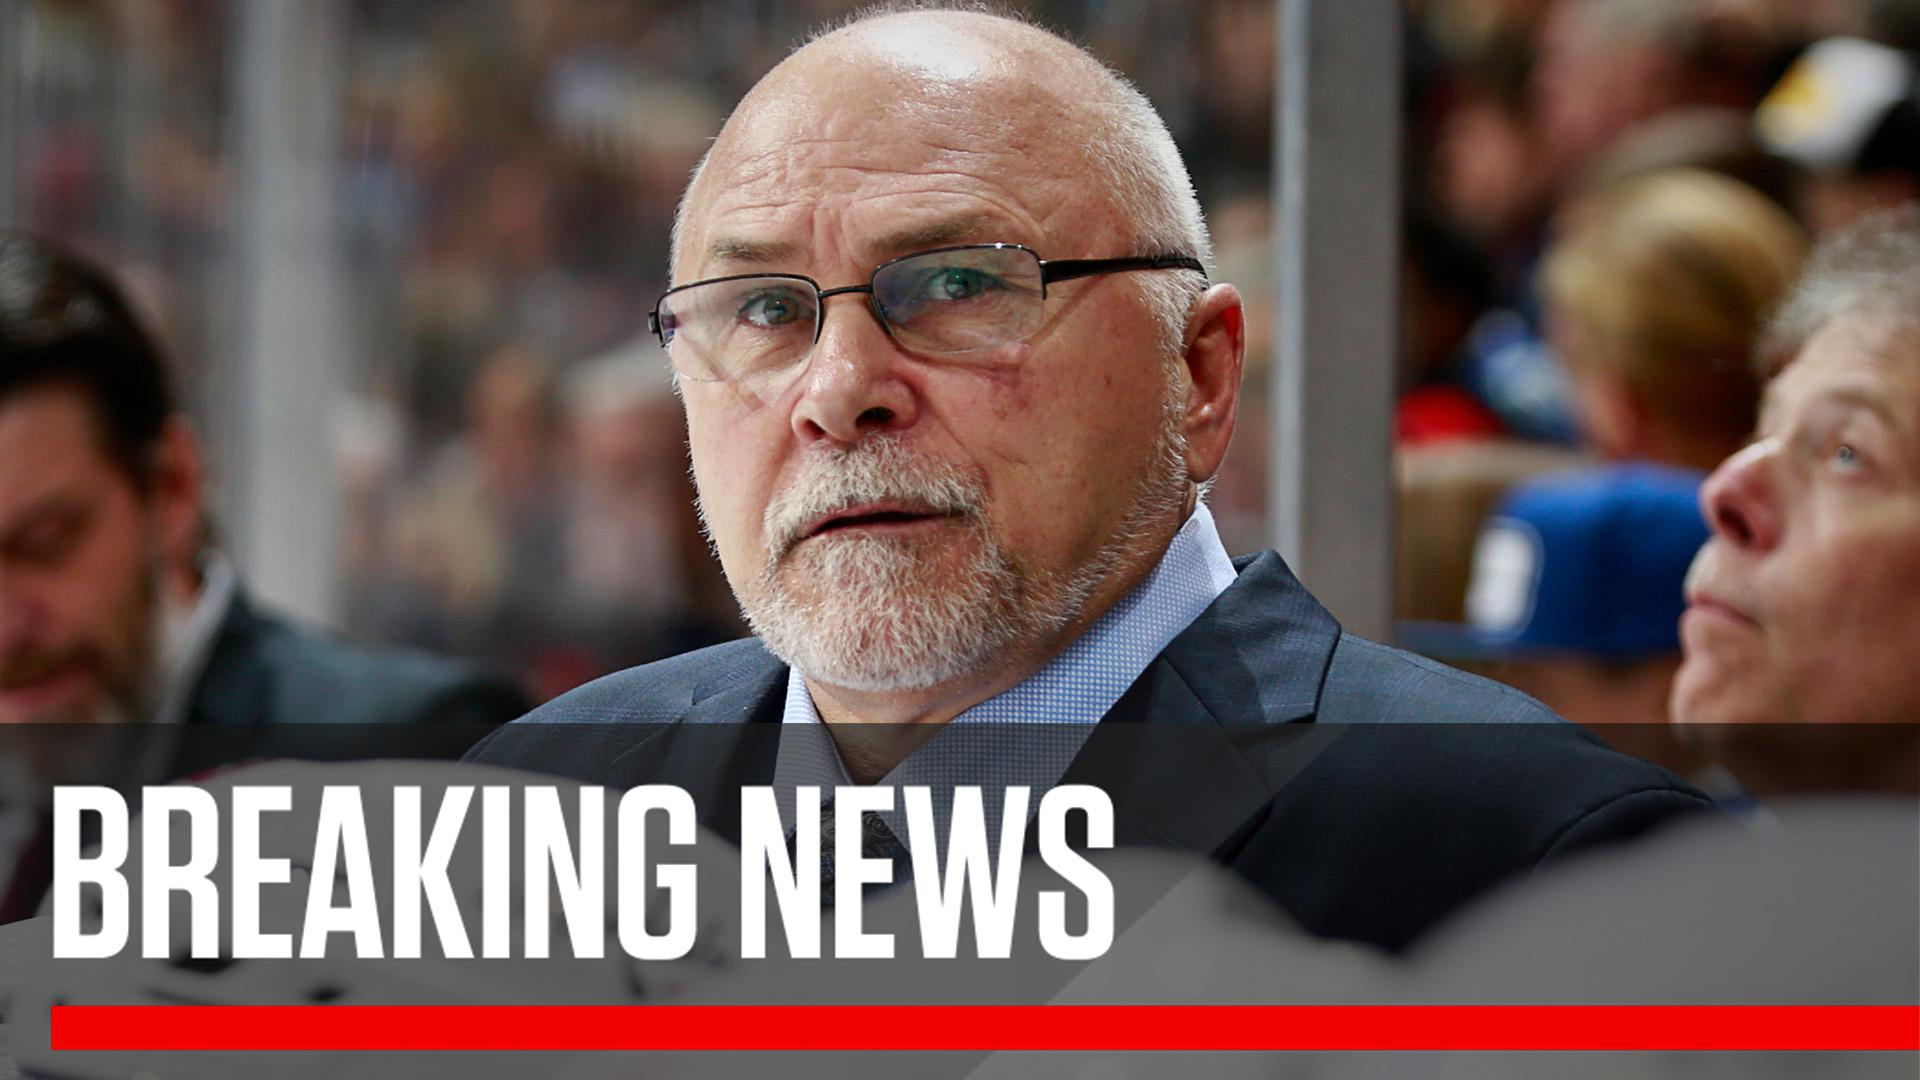 Breaking: Washington Capitals coach Barry Trotz has resigned, the team announced. https://t.co/UGEDEOXMuY